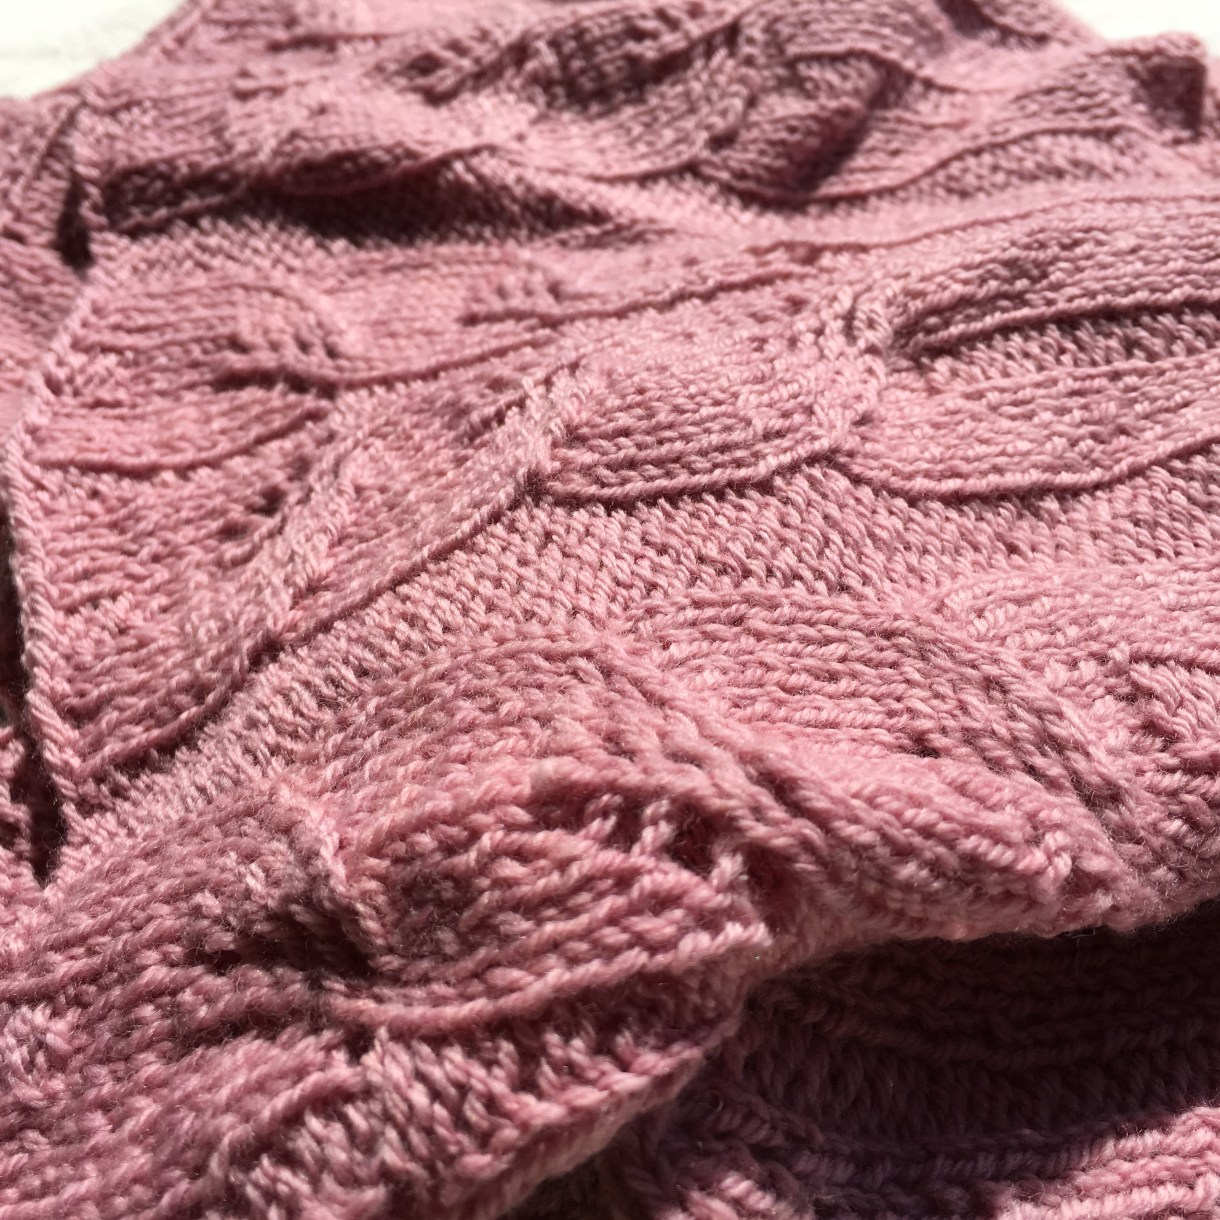 Tulipland summer scarf. Light with a touch of lace. And bright.